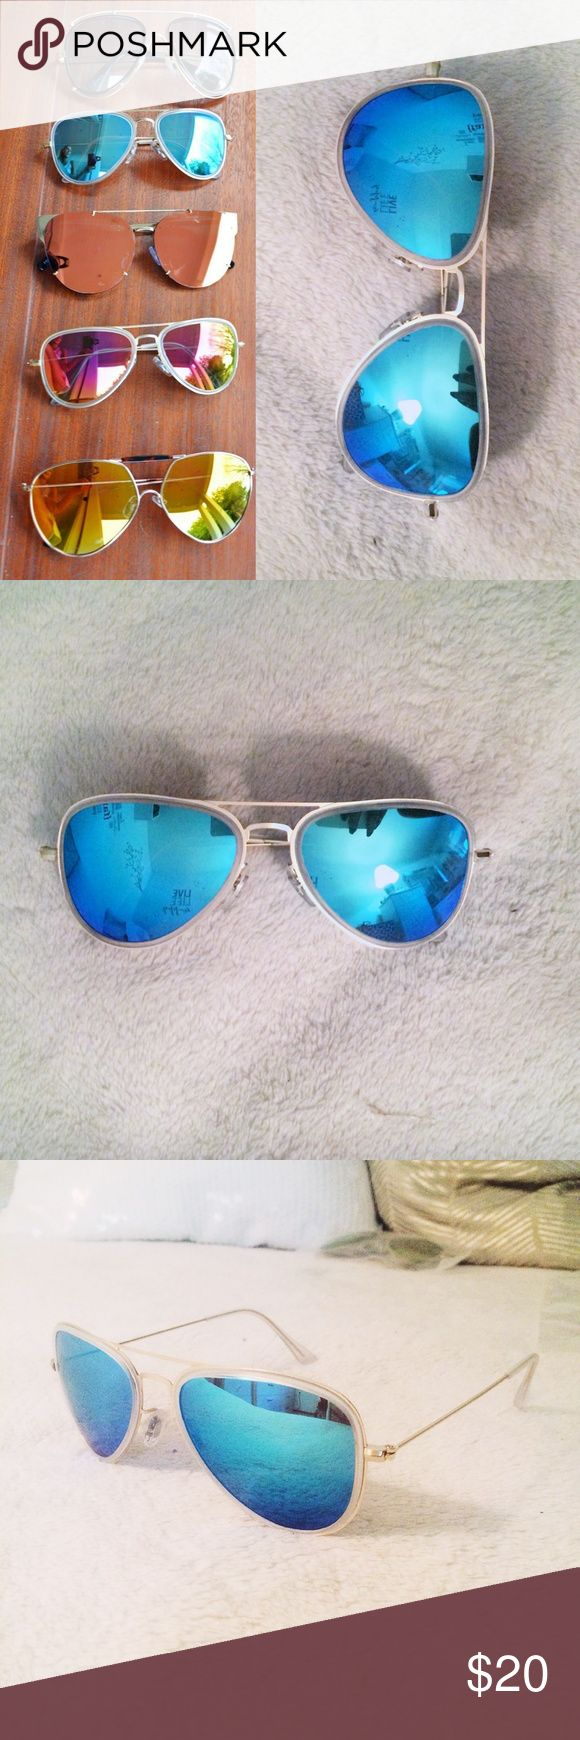 Blue aviator Sunglasses 💙😎 Brand new, no tags. It was a gift but they are too small for my face. Best for someone with small face. Very light and stylish! Accessories Sunglasses